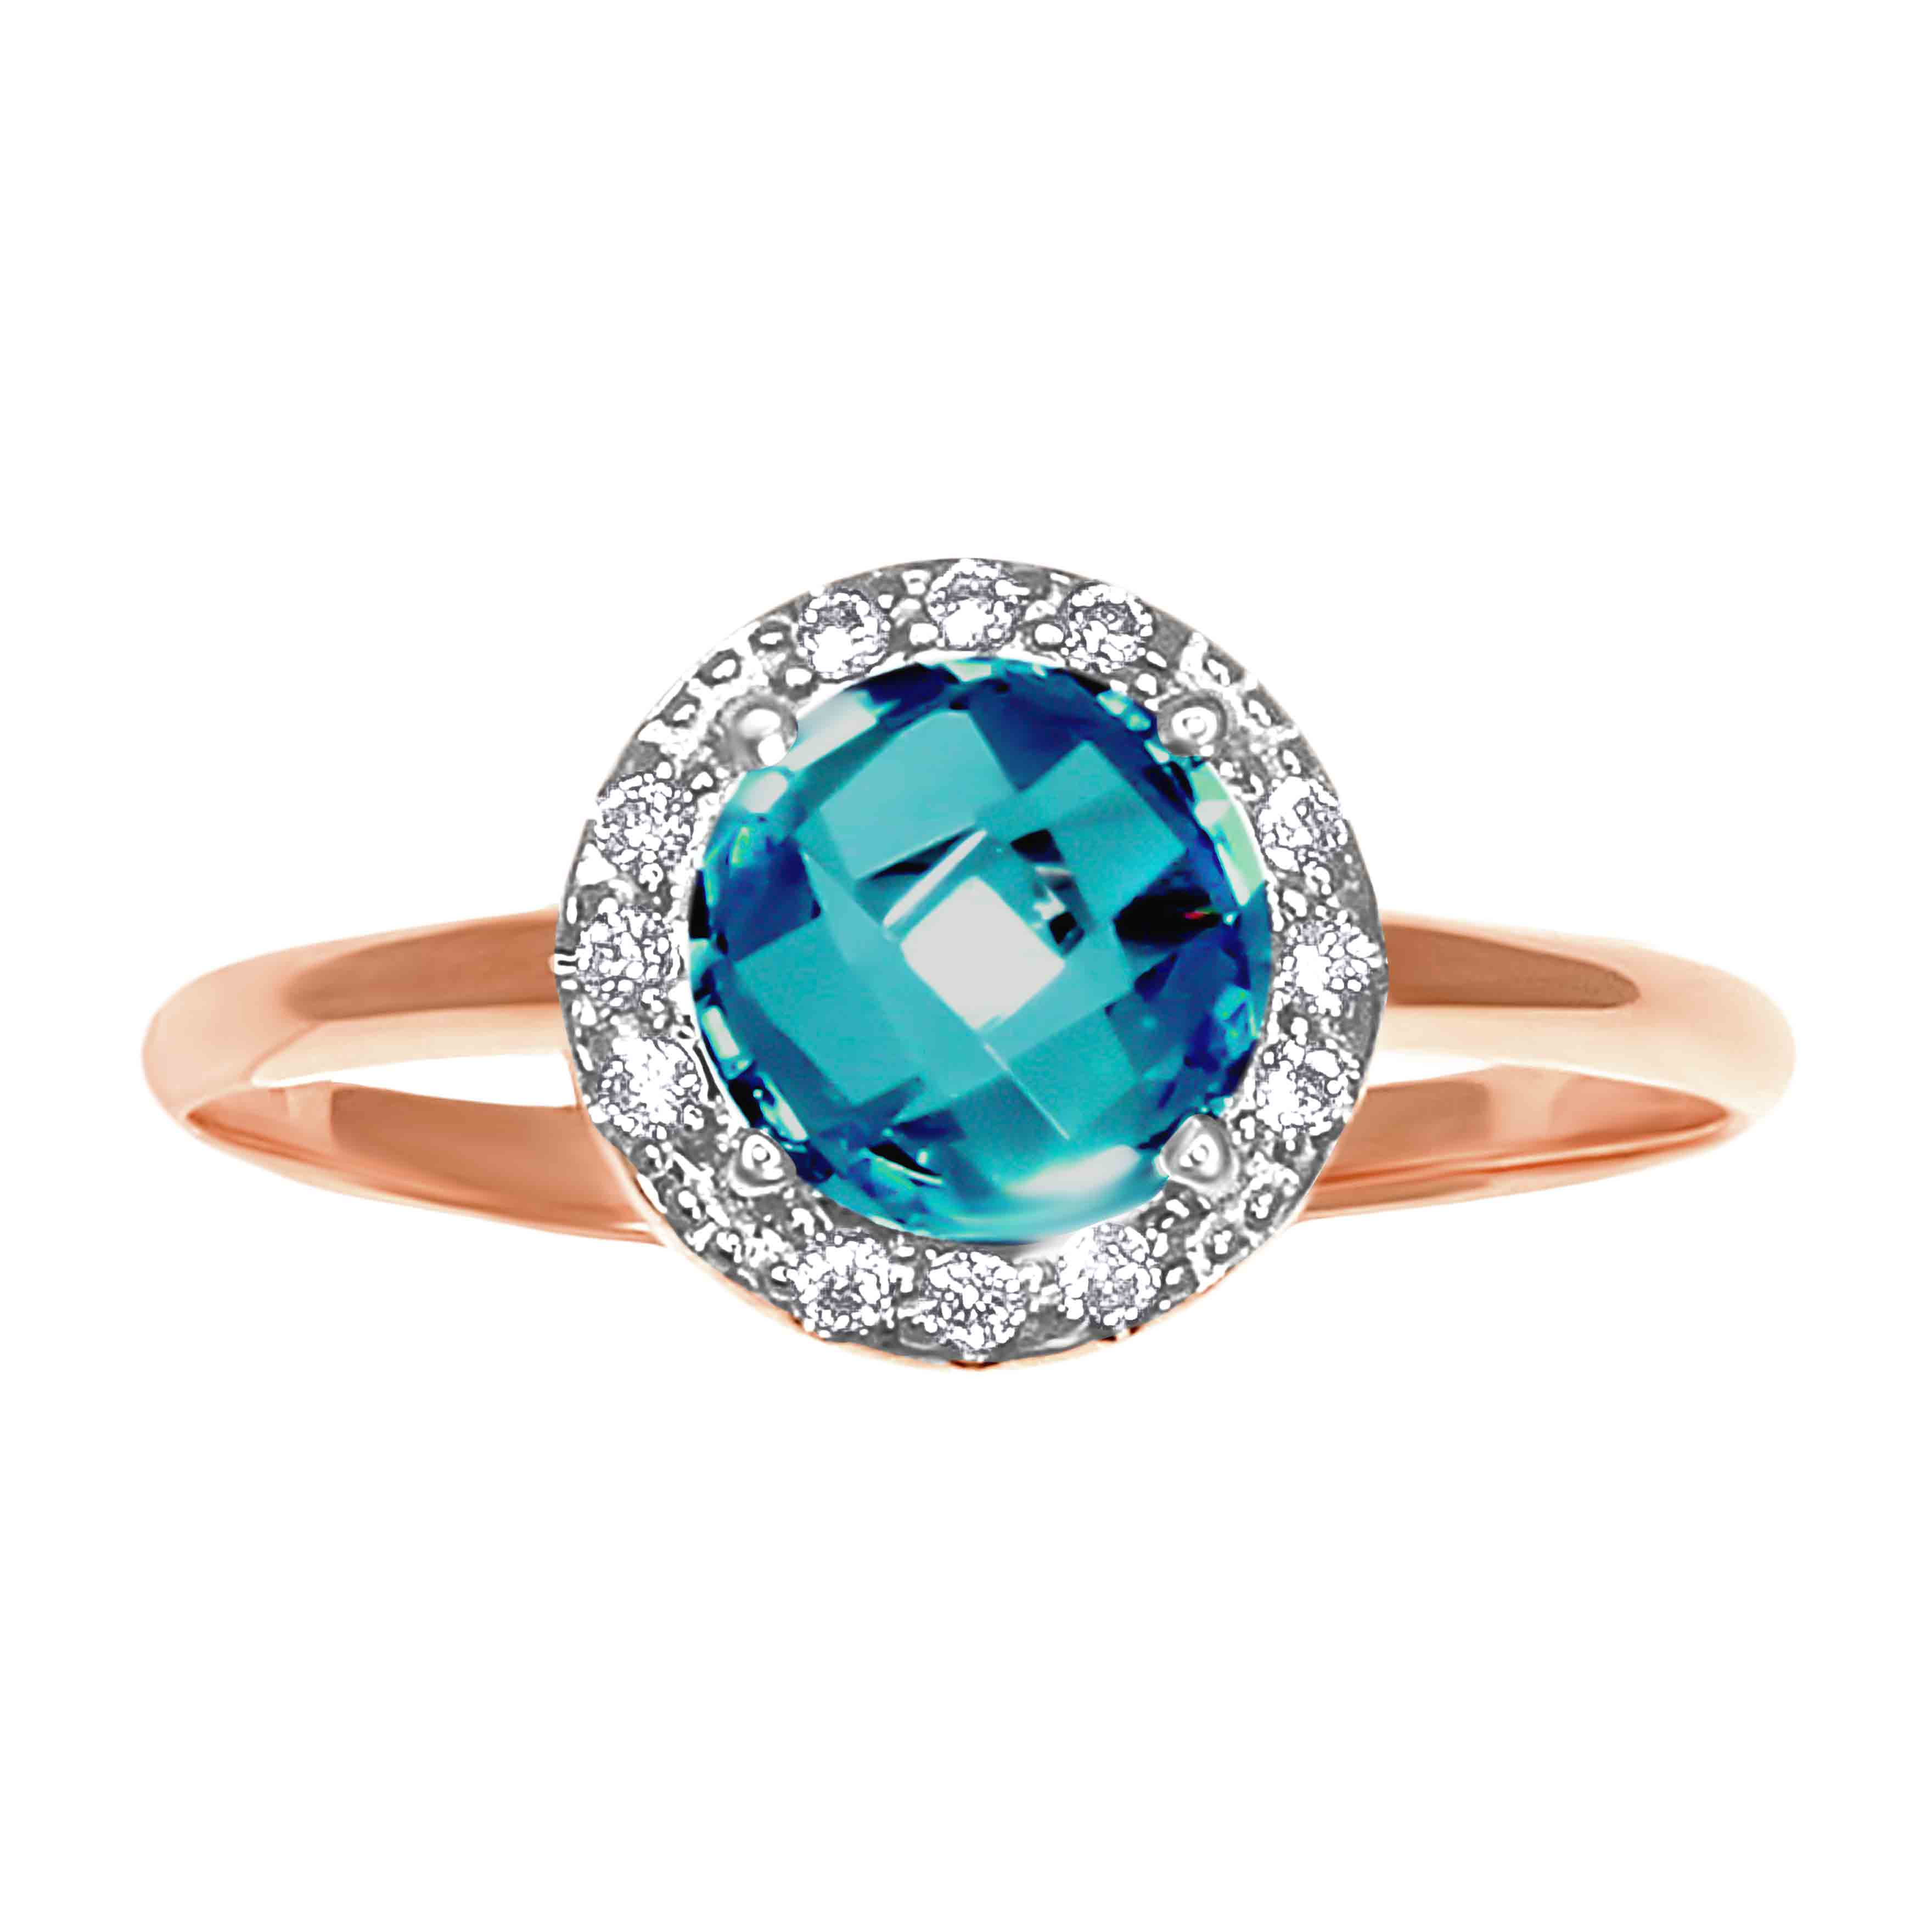 Fancy Cut Blue Topaz Ring. View 2